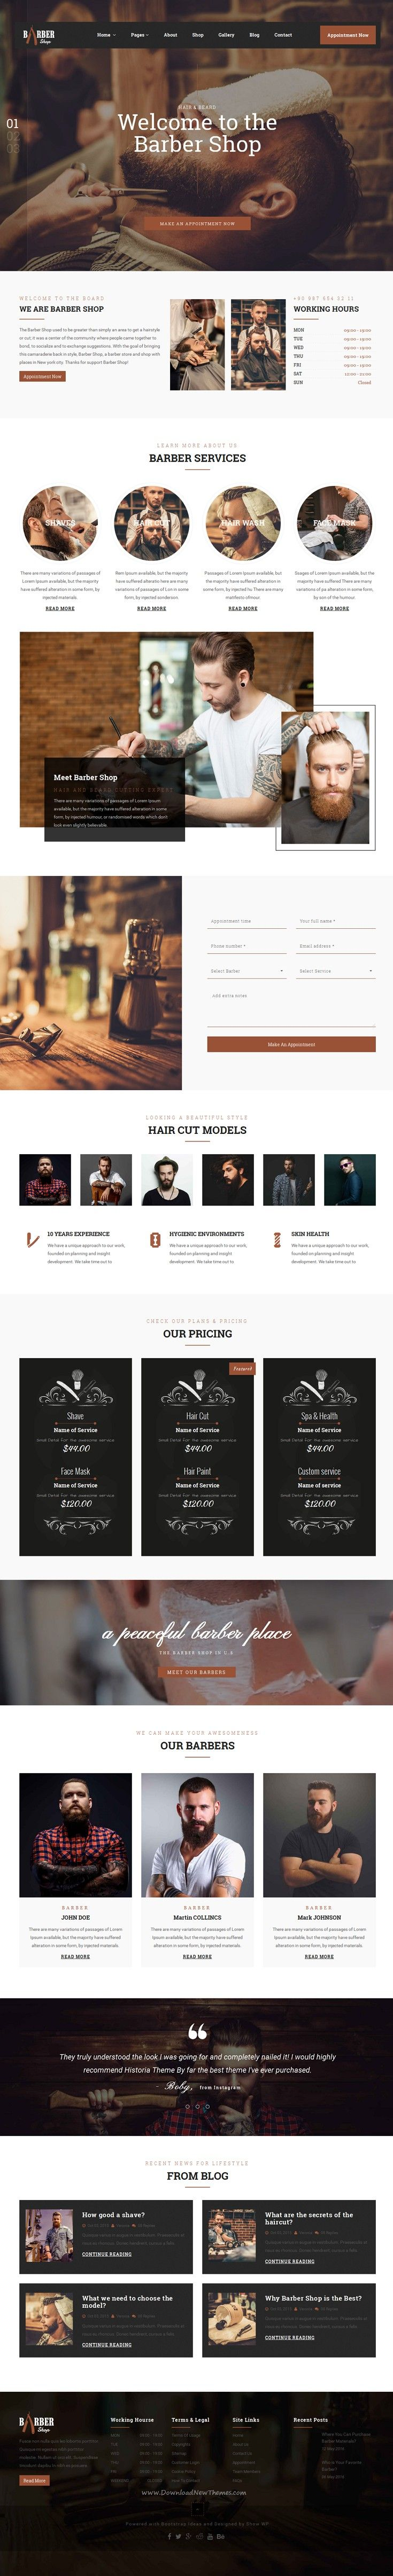 The Barber Shop is a Bootstrap HTML template design for professional #barber sites, hair salon or barber #shop #websites. Download Now!